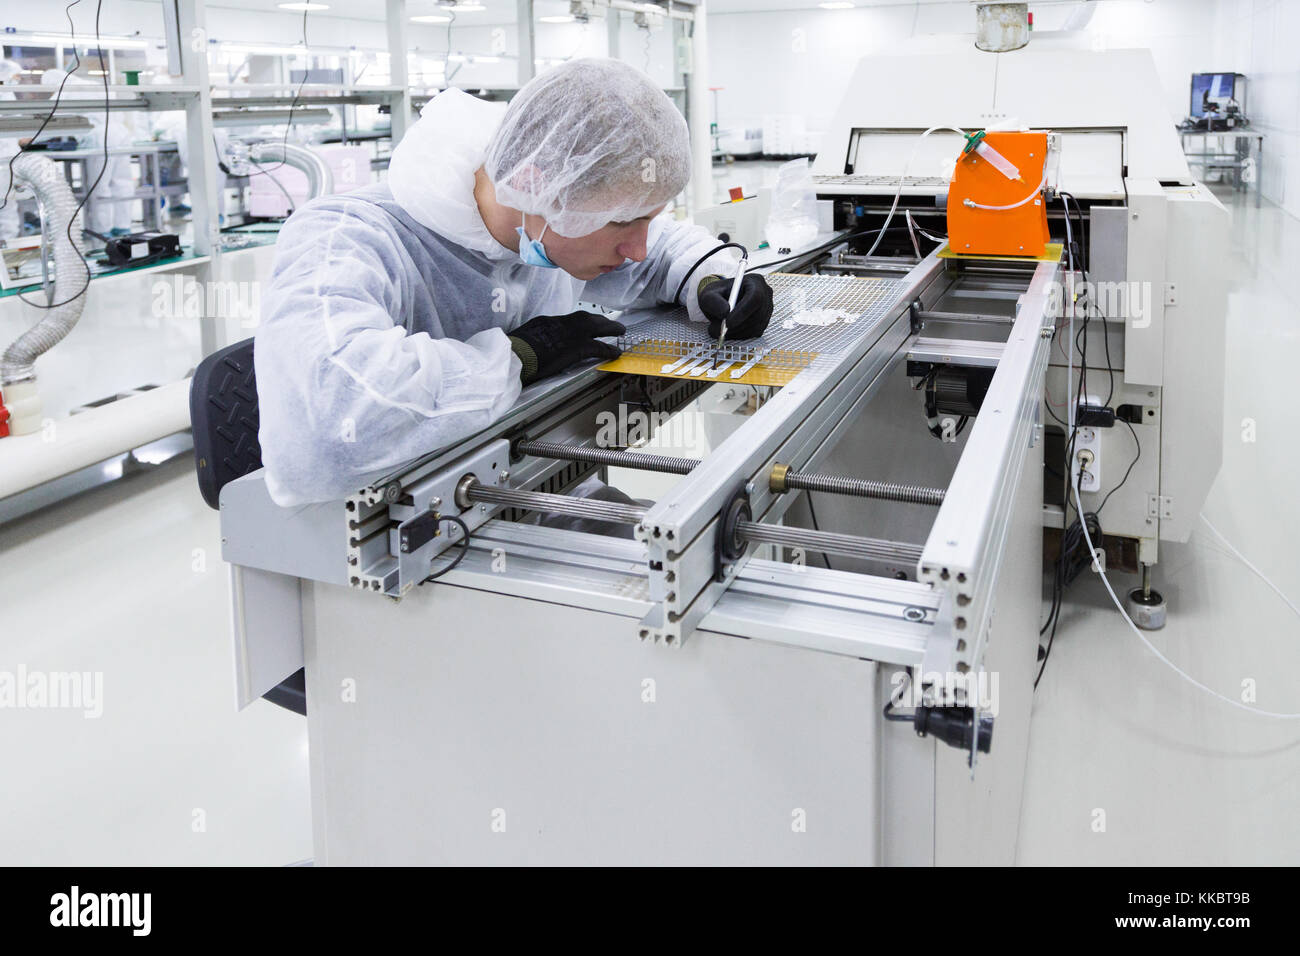 production of television sets - Stock Image